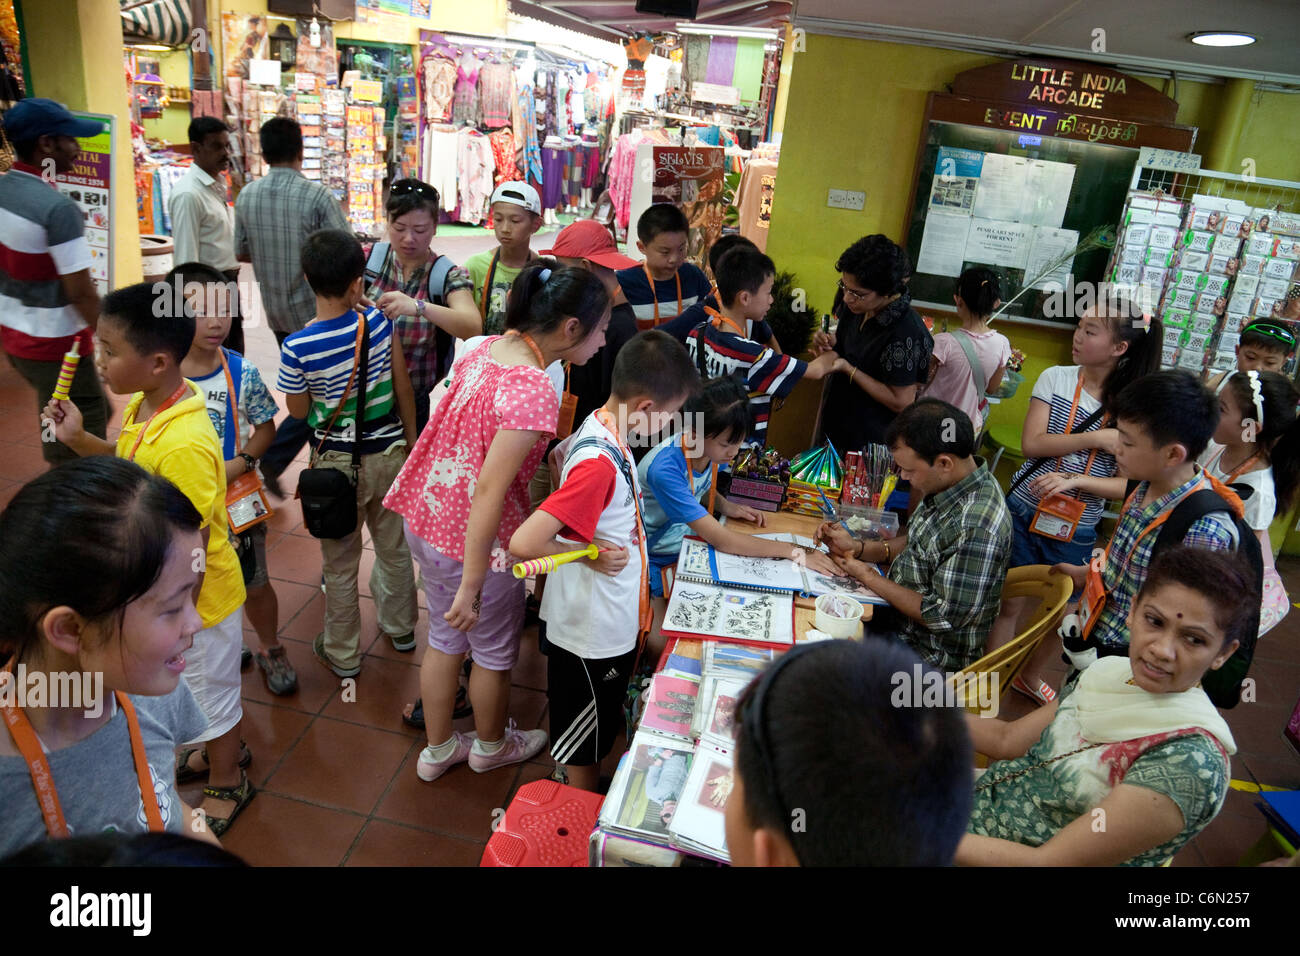 Singapore Trip Stock Photos Images Alamy Schoolchildren On A School To Little India Asia Image